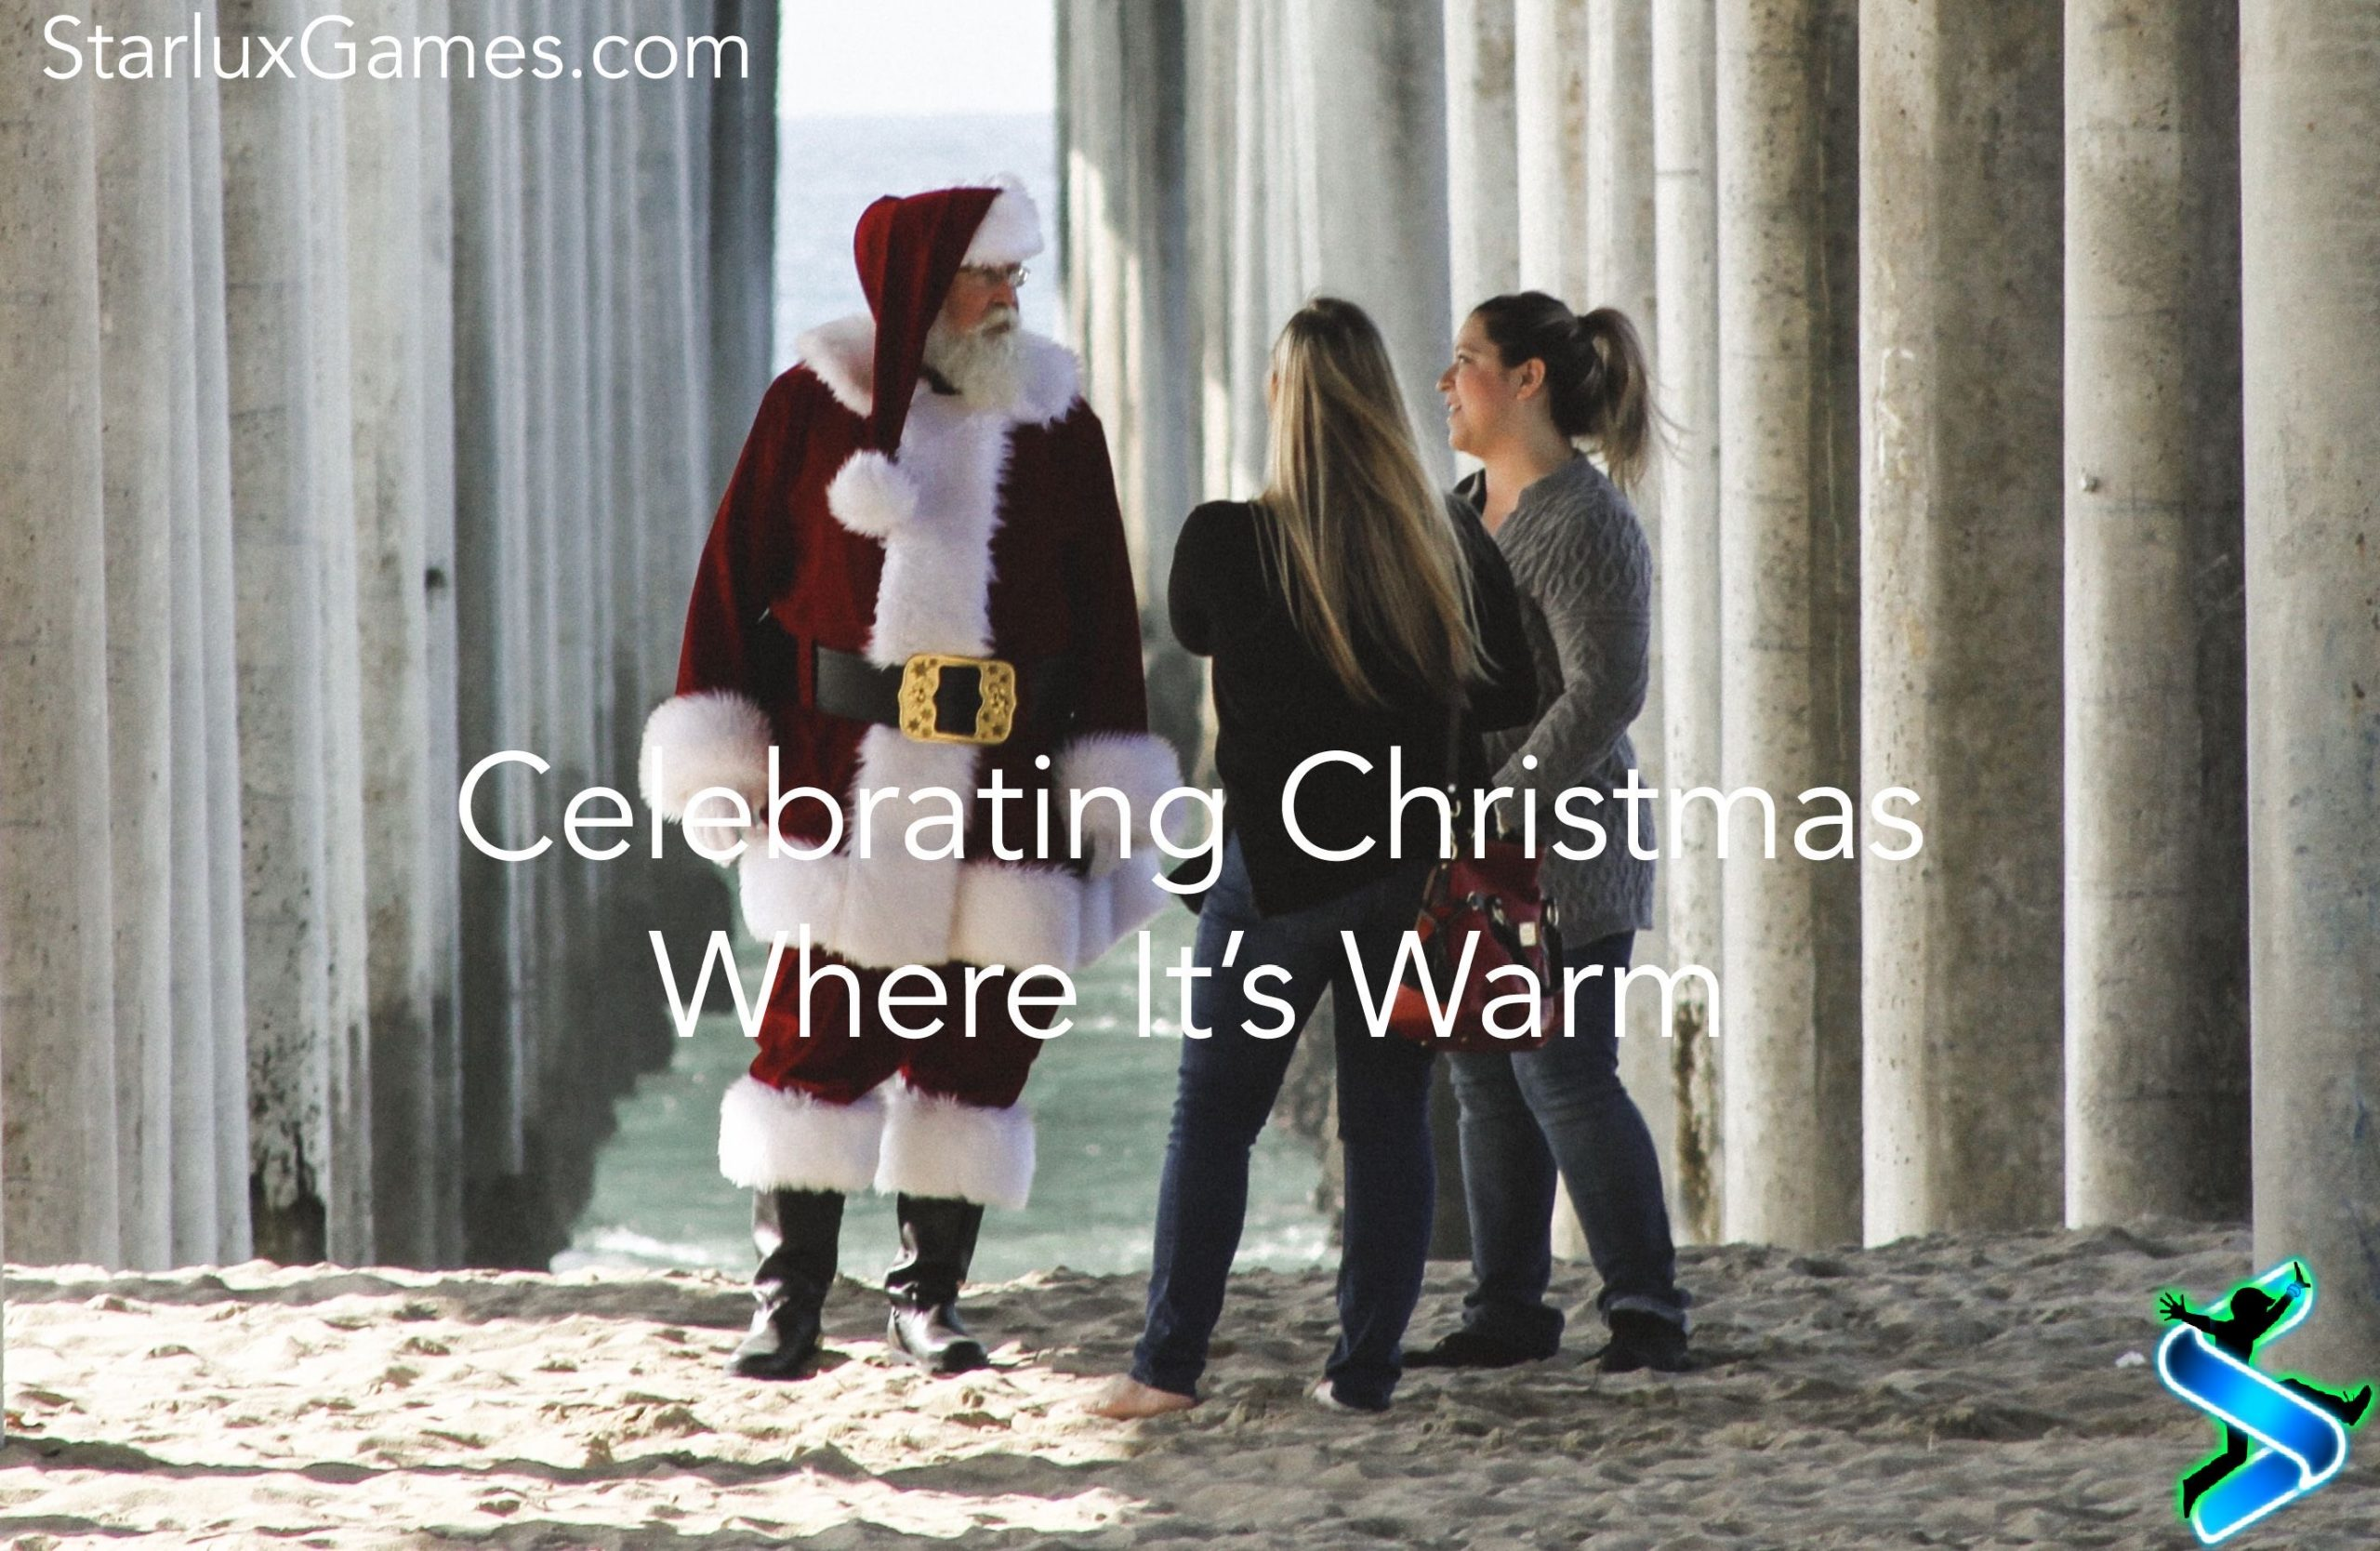 Santa Claus stands on a beach talking to two people